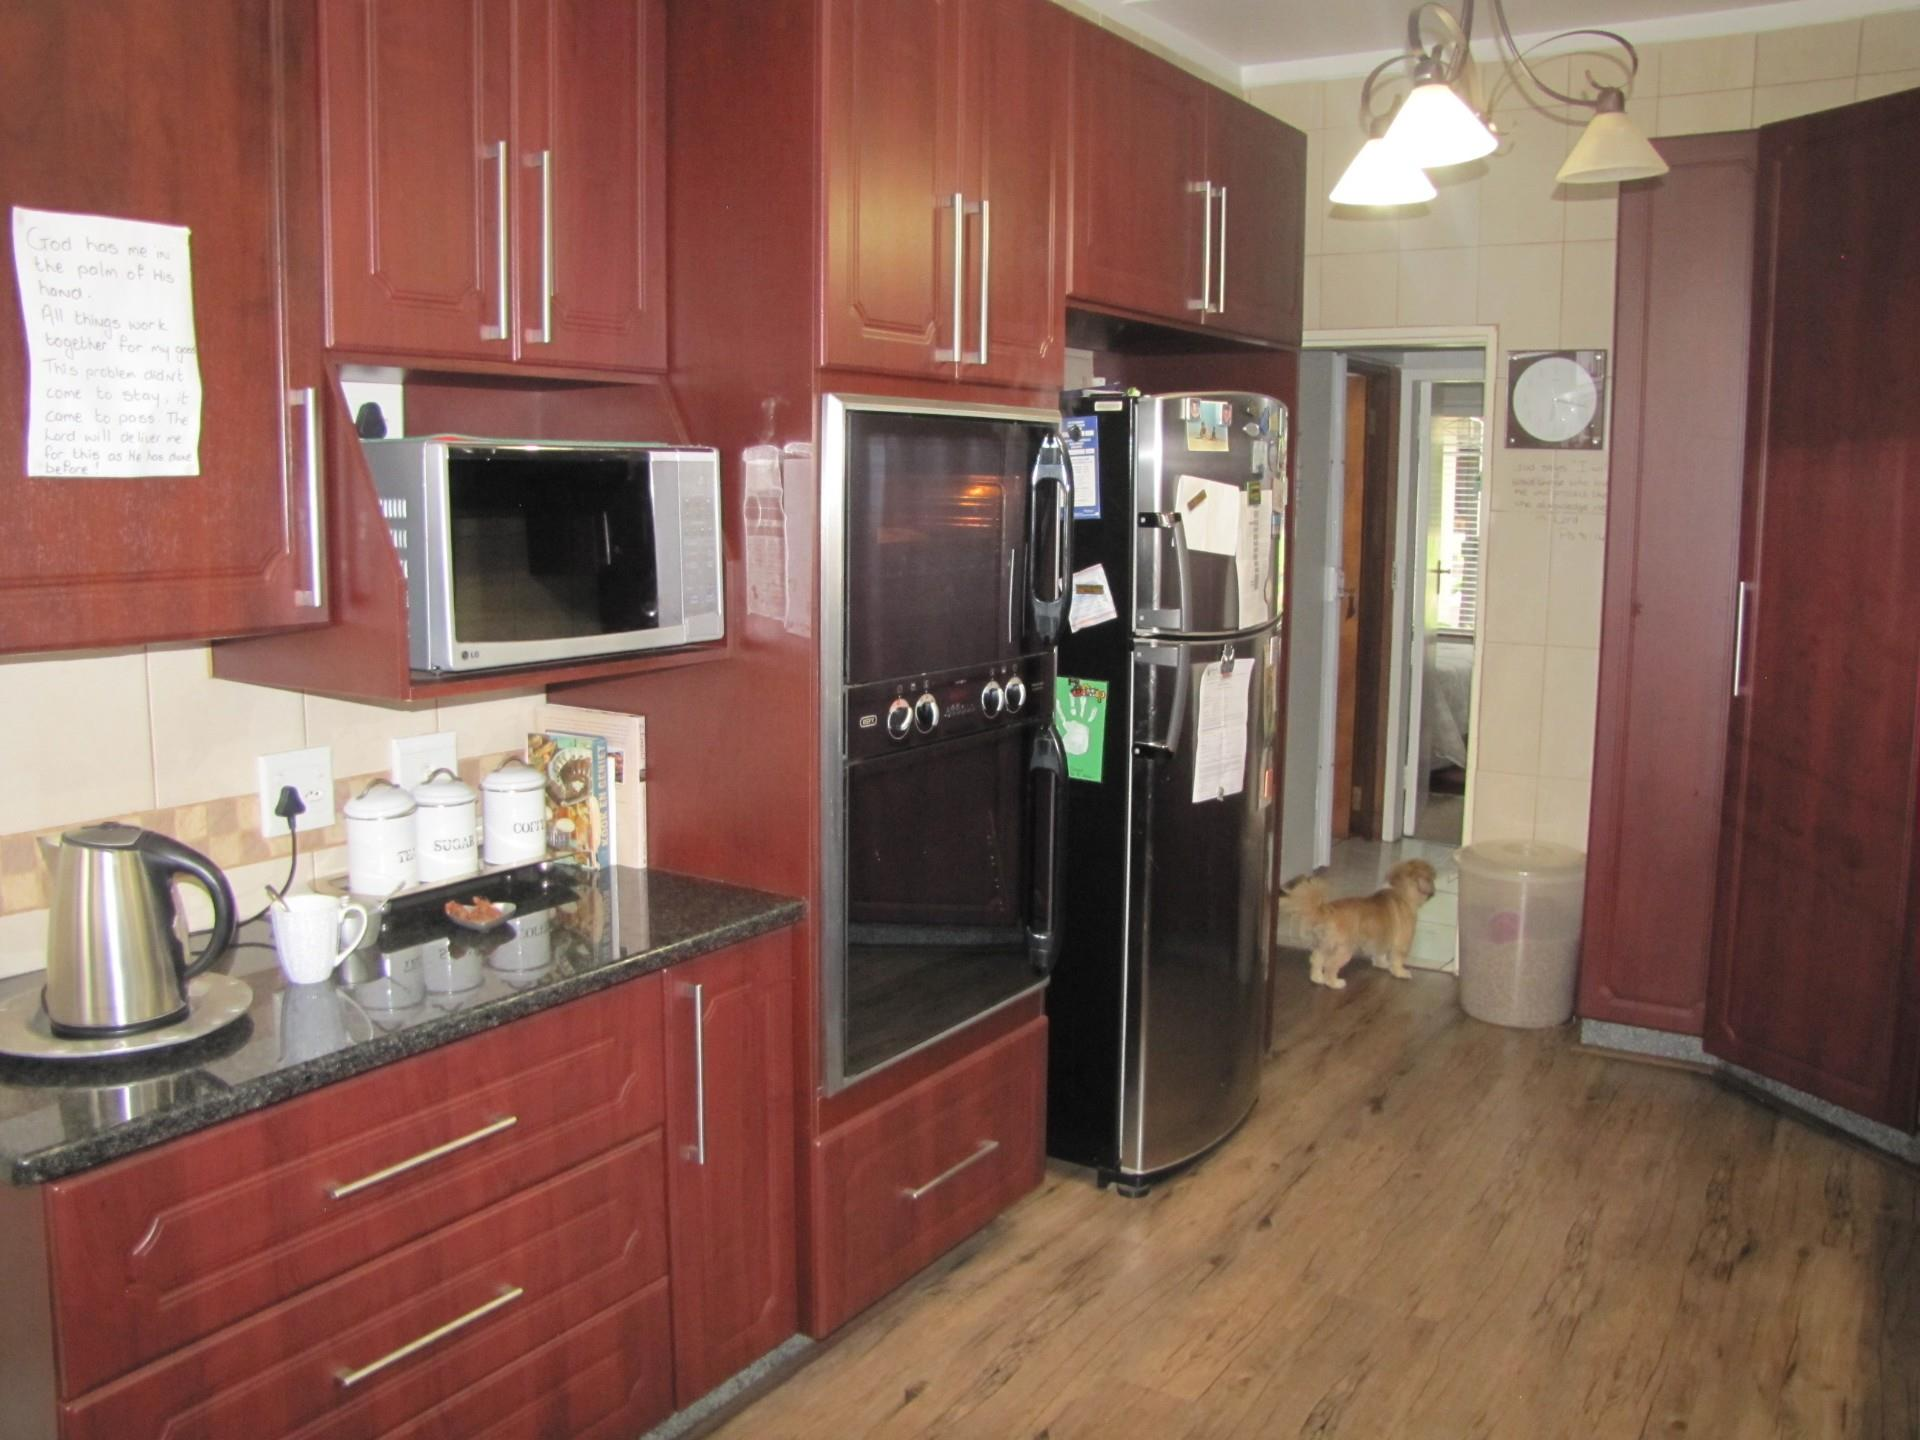 3 Bedroom House For Sale in Three Rivers Proper